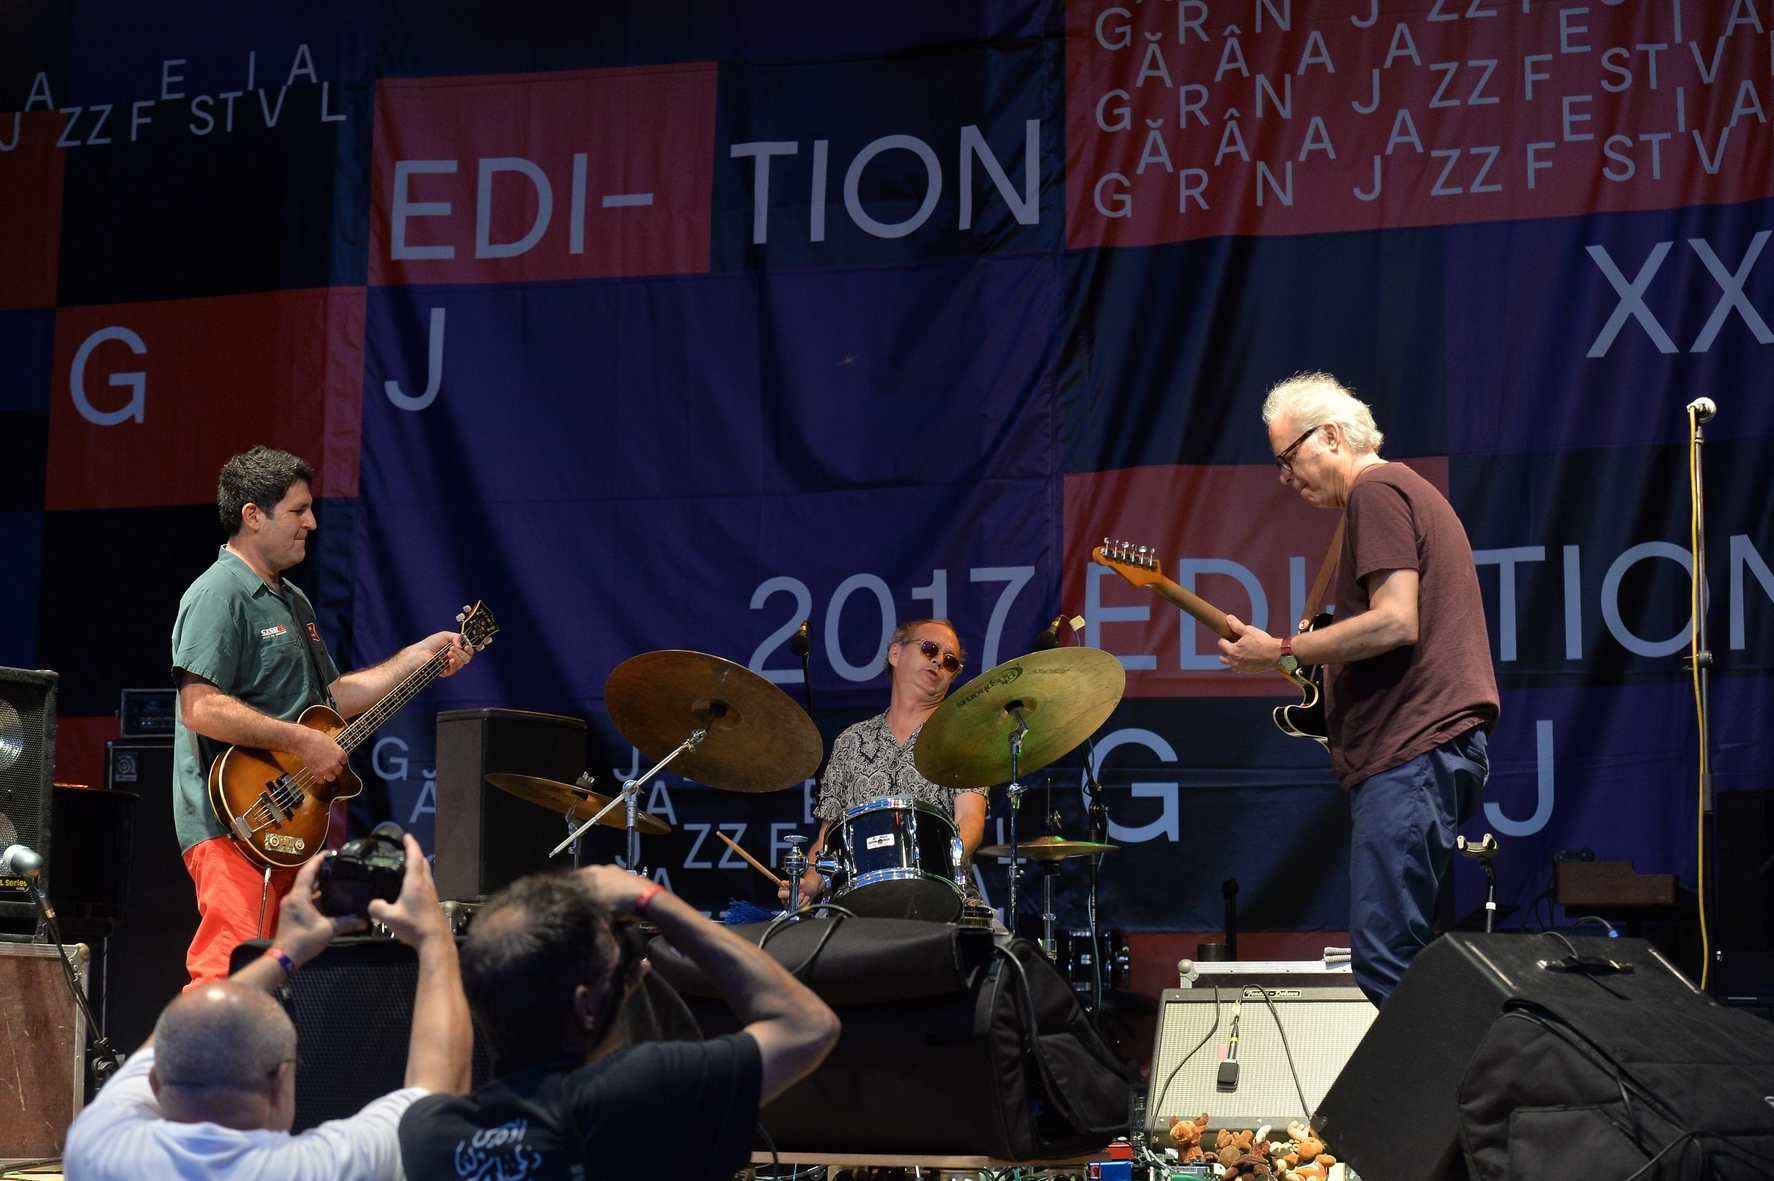 Bill Frisell Trio at Garana Jazz Festival 2017